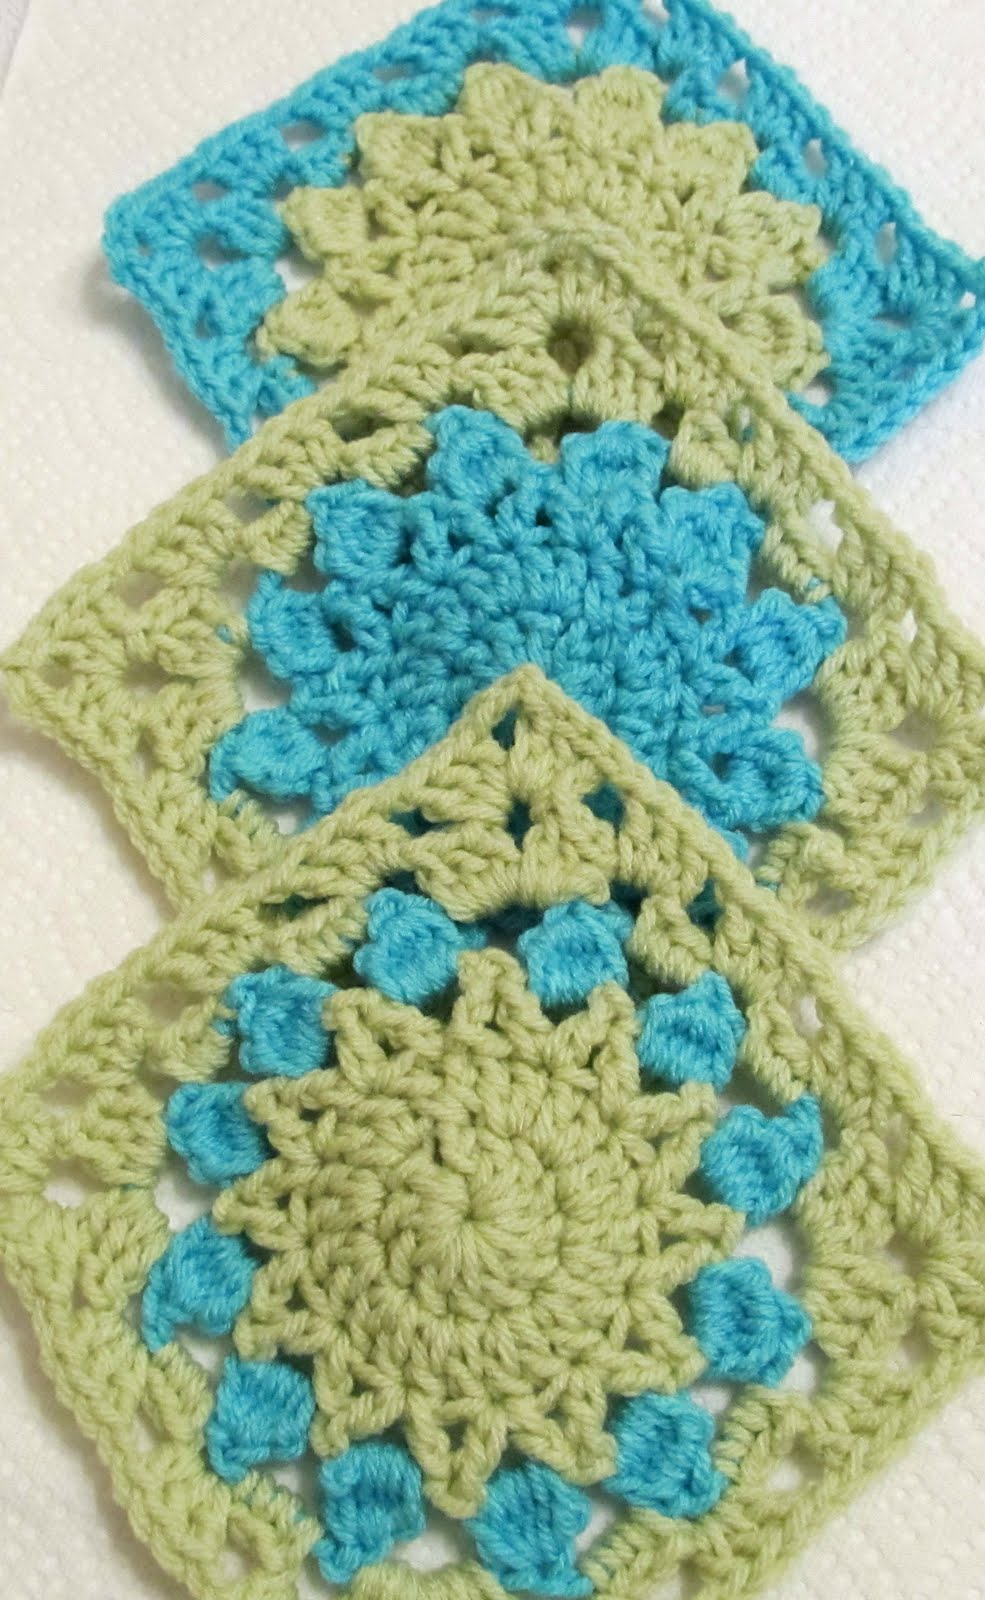 SmoothFox Crochet and Knit: SmoothFox Charity Square Nbr 1 thru 4 ...